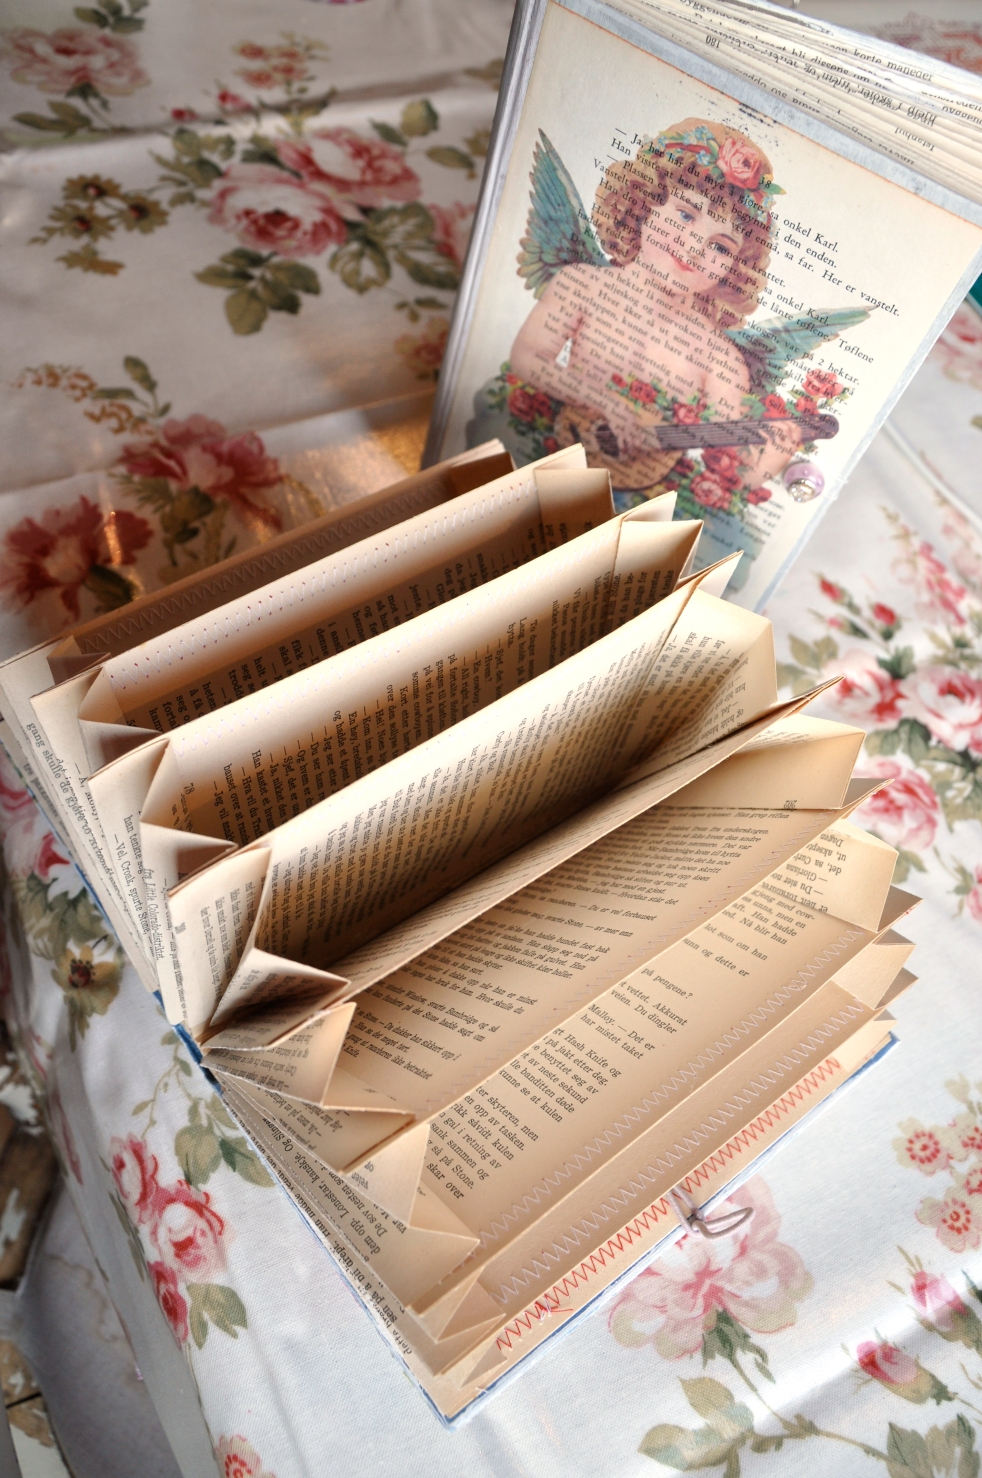 Wings of Whimsy: DIY Book Crafts No 4 - Accordion Organizer